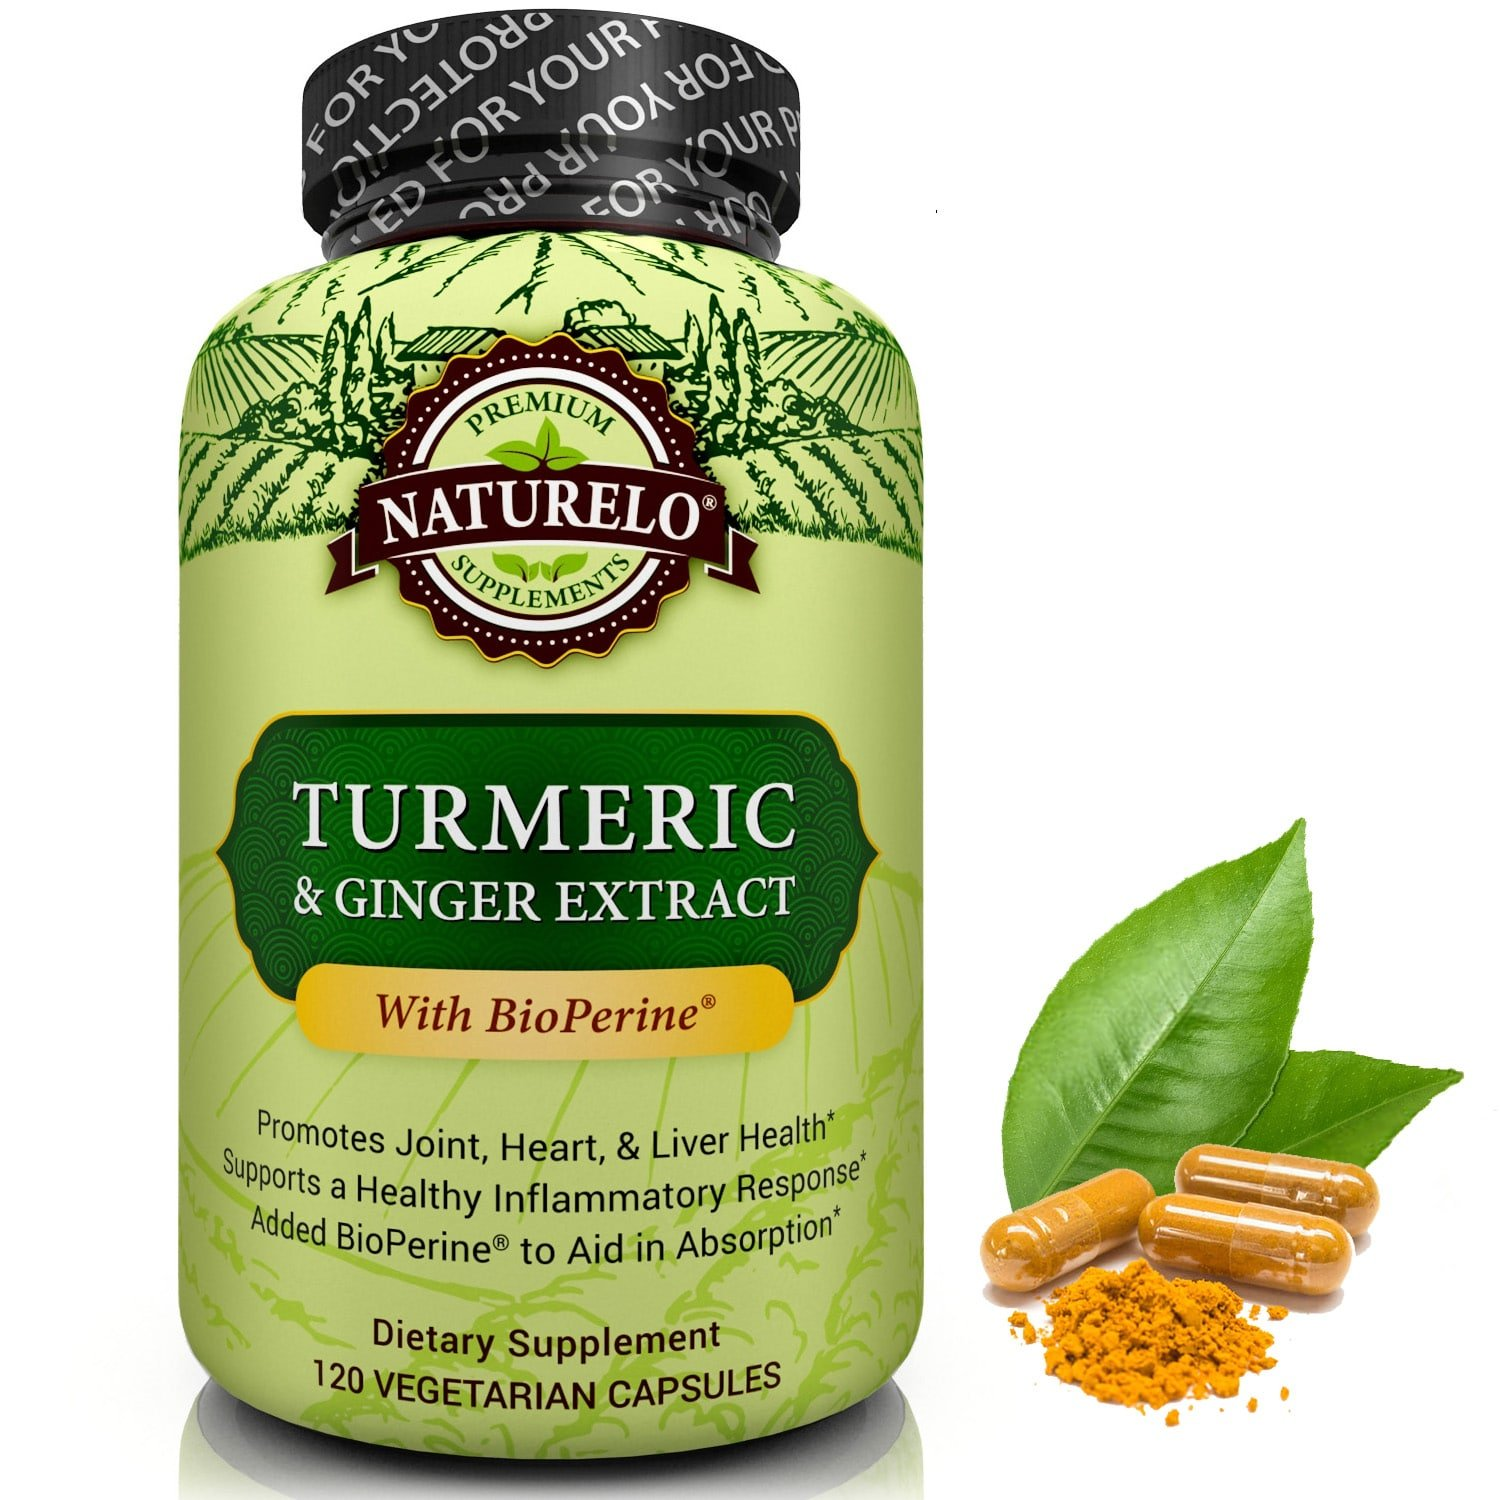 NATURELO Organic Turmeric Powder with Ginger Extract - Added BioPerine for Better Absorption - Best Anti Inflammatory Curcumin Supplement for Joint Pain Relief - 120 Capsules